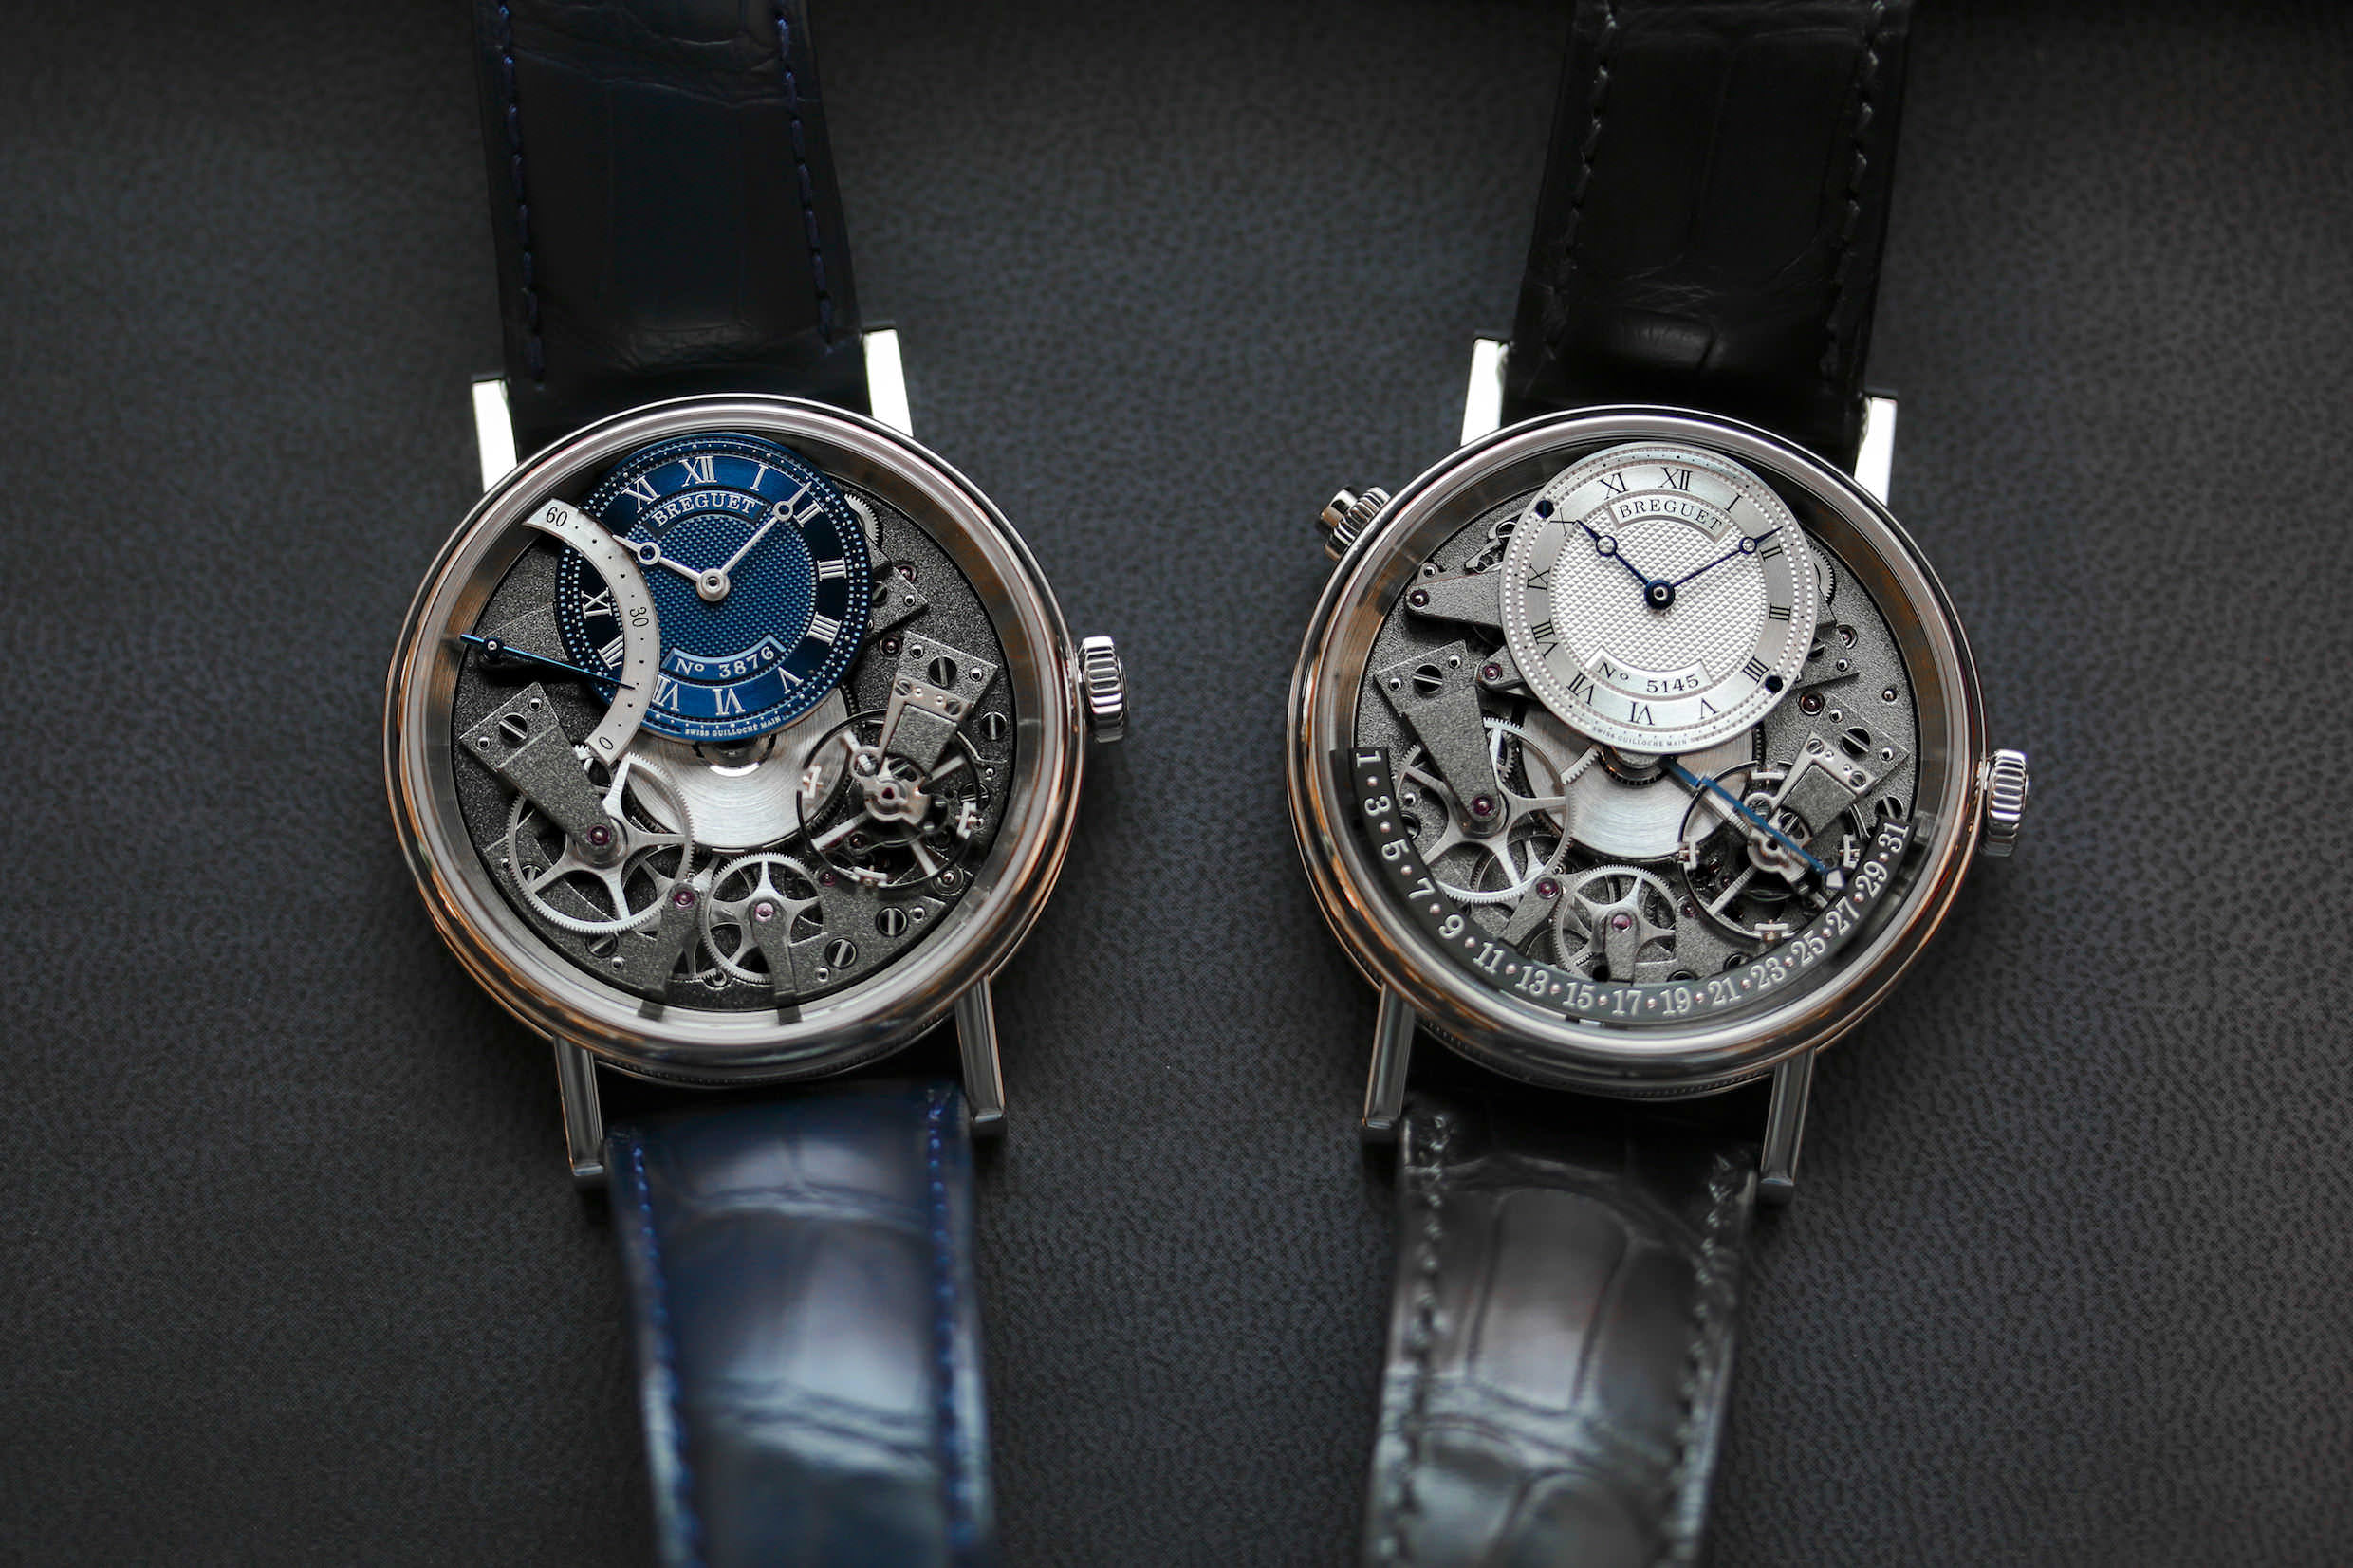 Zwei Breguet Tradition Modelle